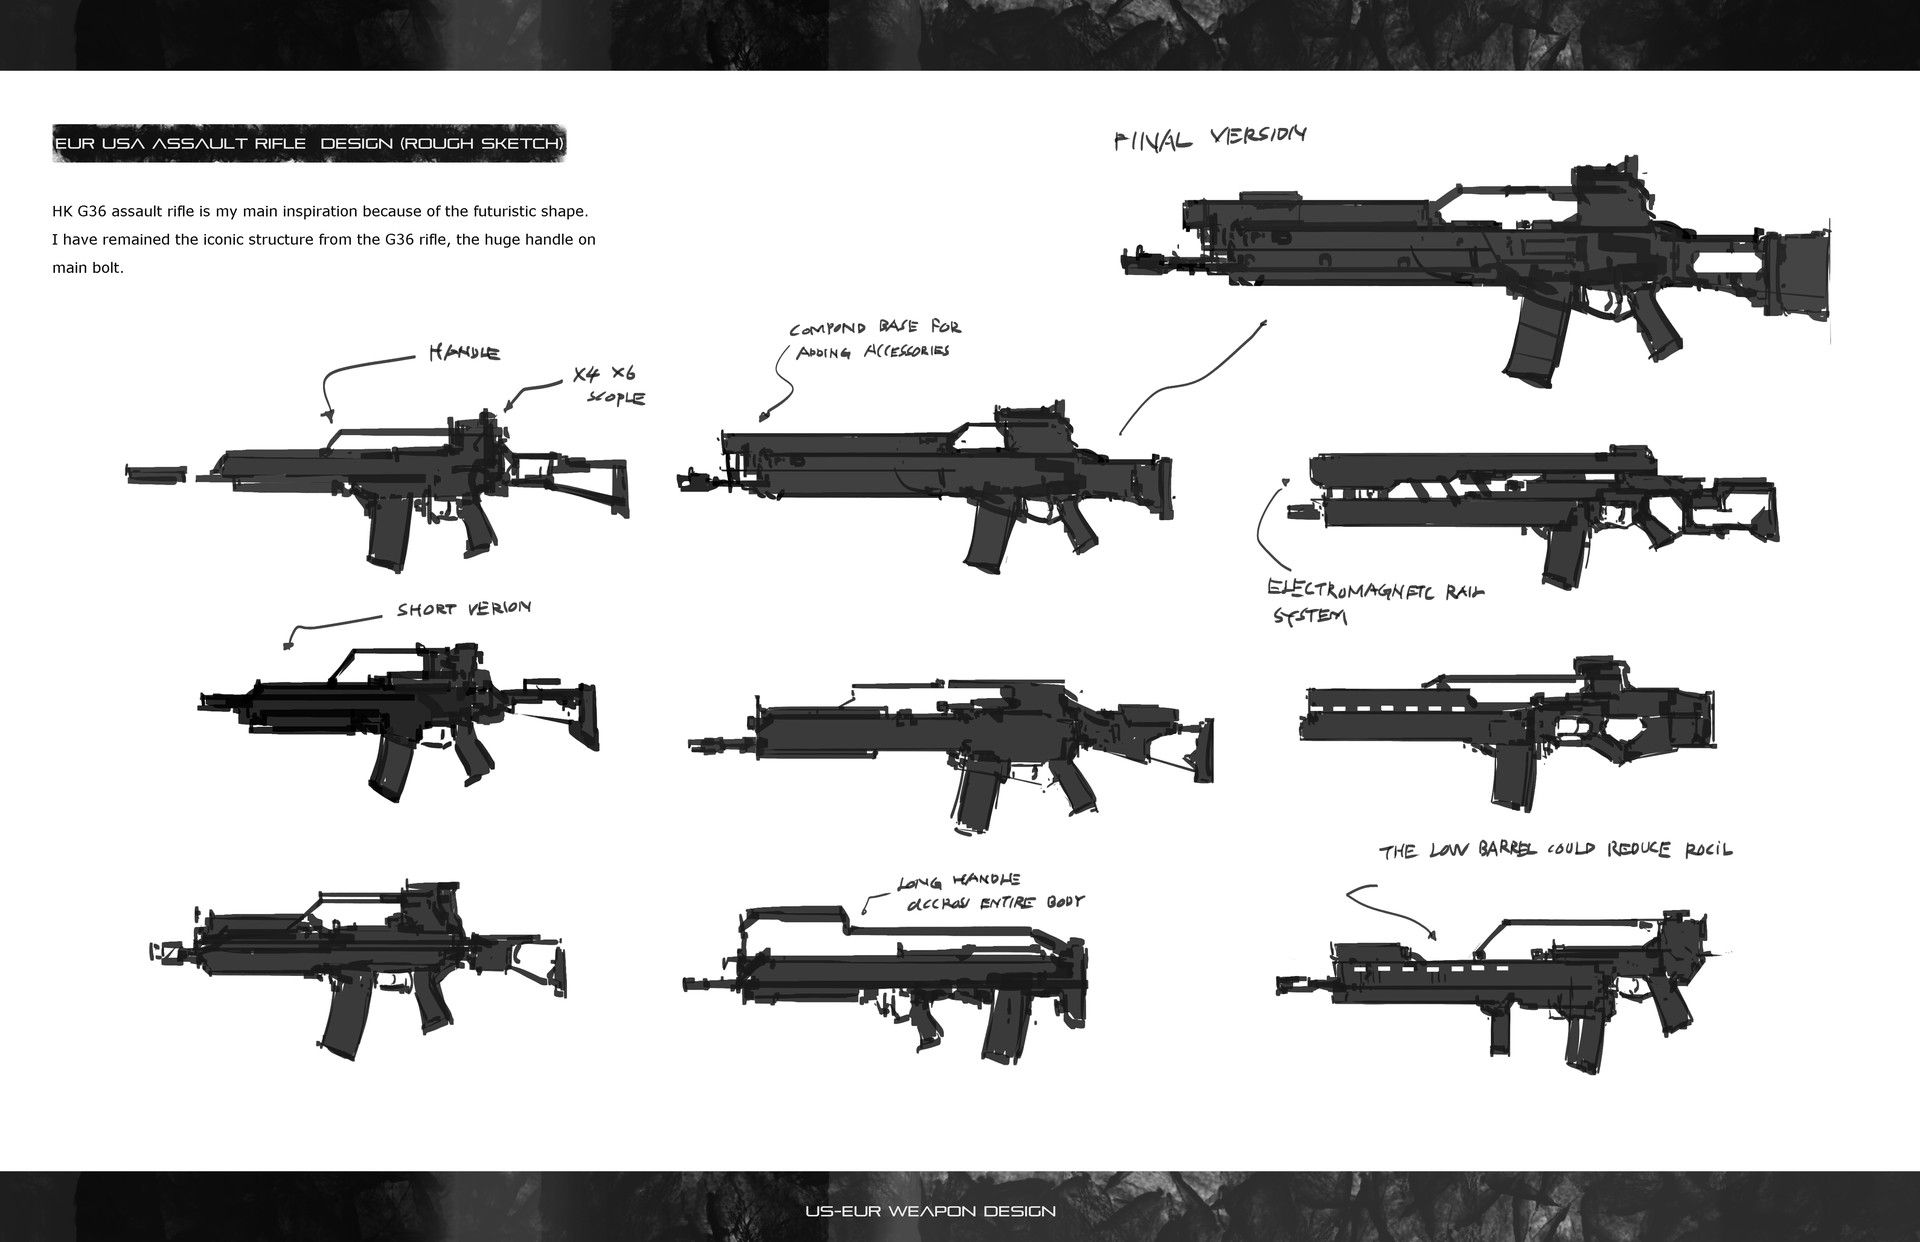 from this page  i will show the weapon system that rur usa